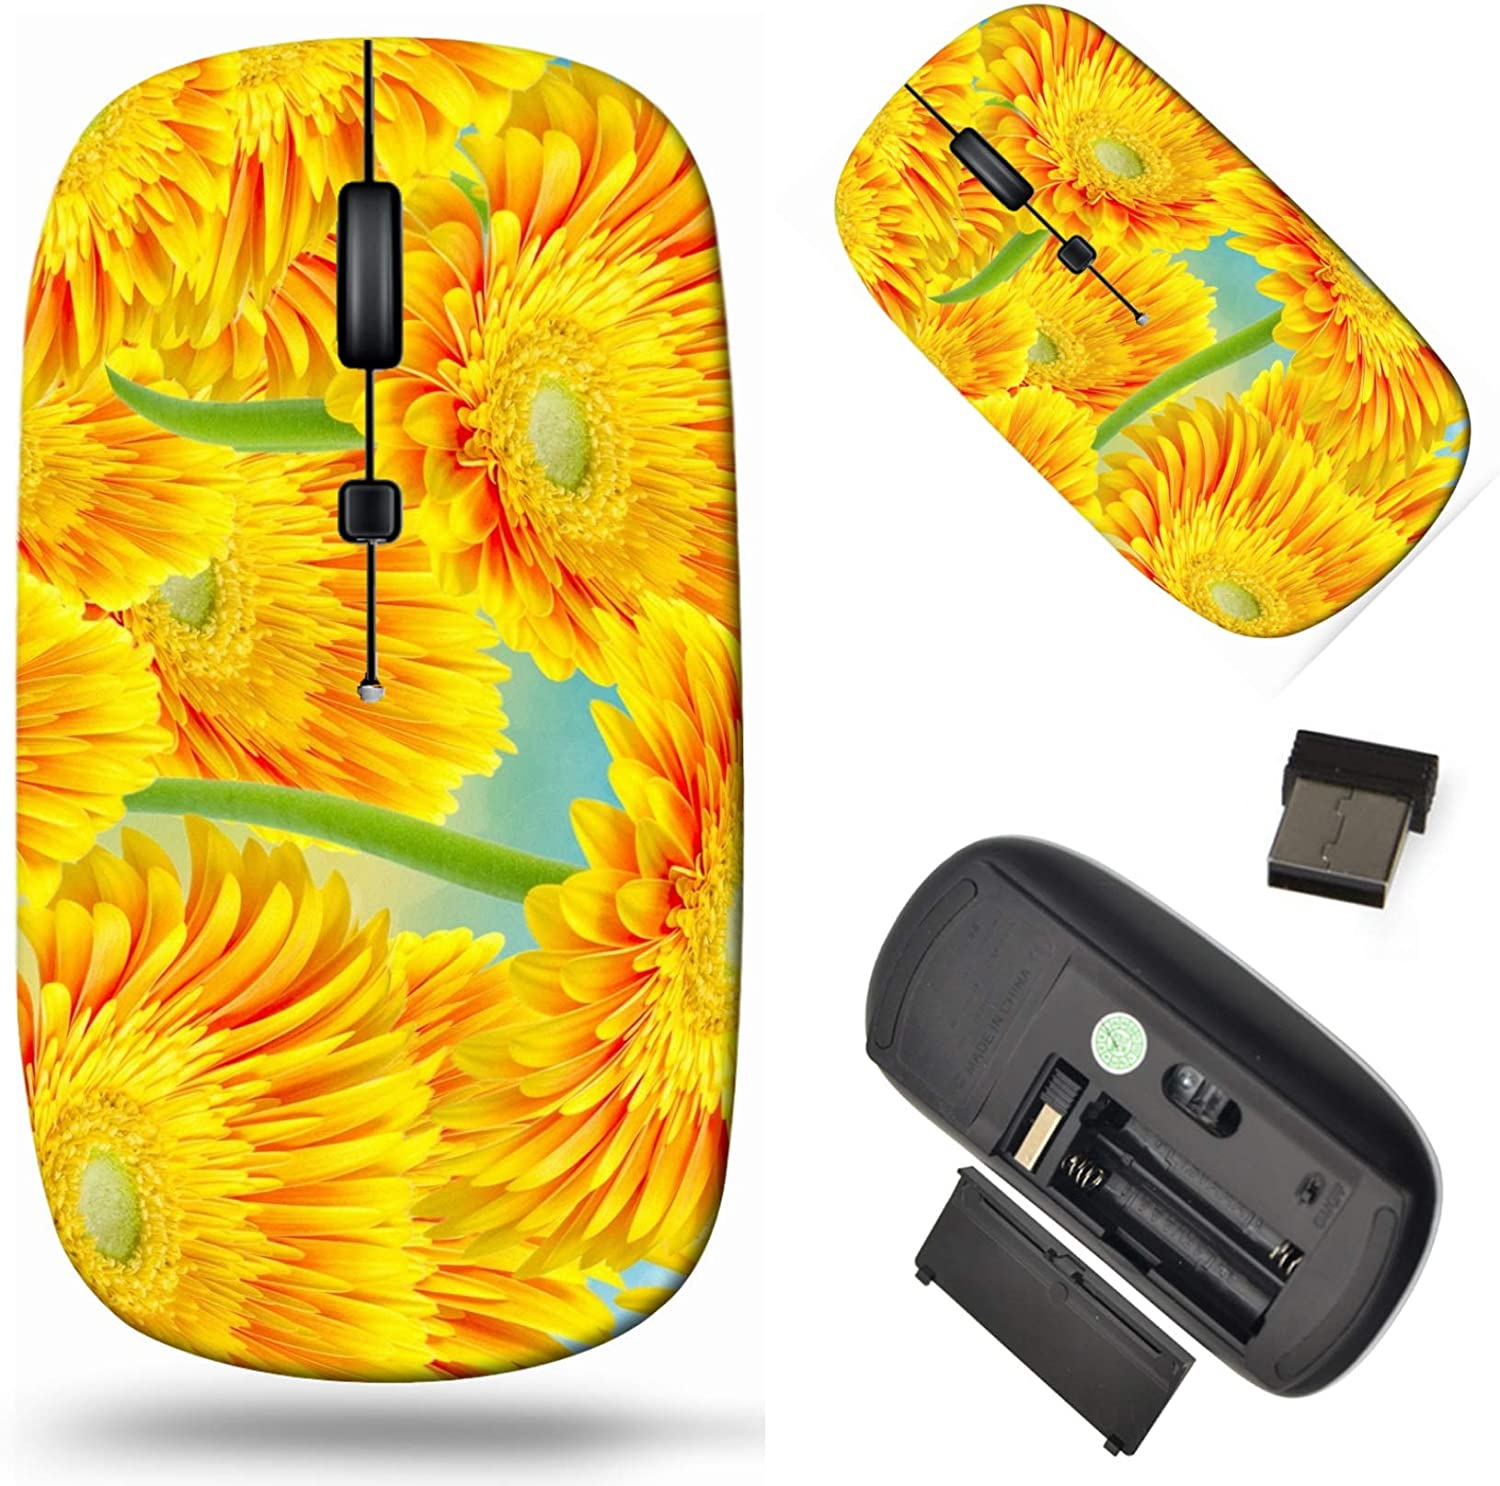 Wireless Computer NEW before selling ☆ Superlatite Mouse 2.4G with Laptop USB Receiver Cor